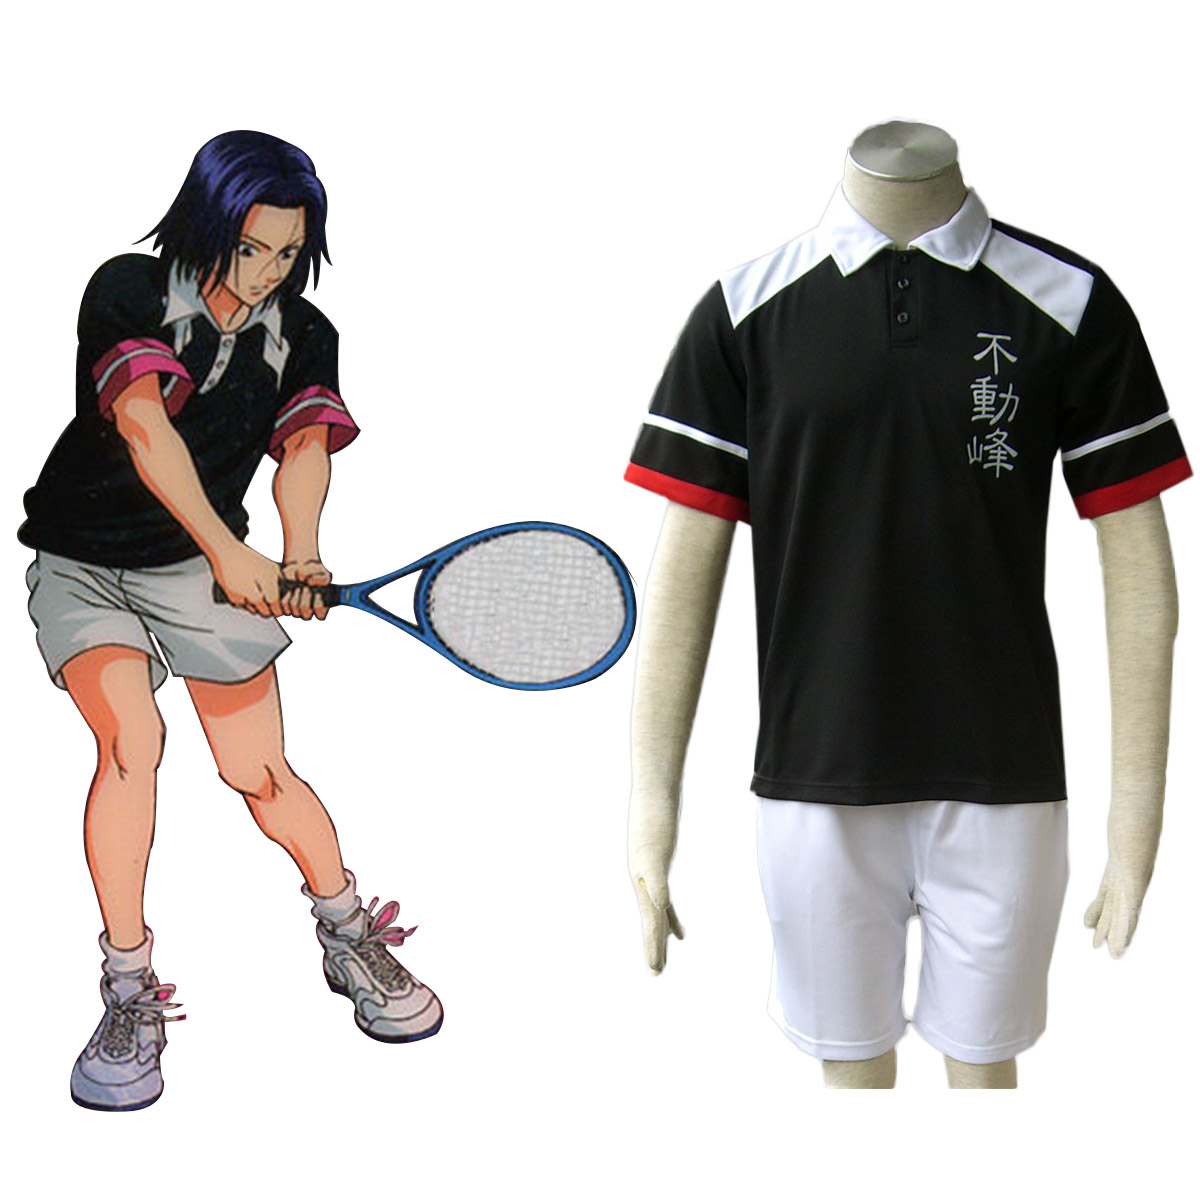 The Prince of Tennis Fudomine Zomer Uniformen Cosplay Kostuums België